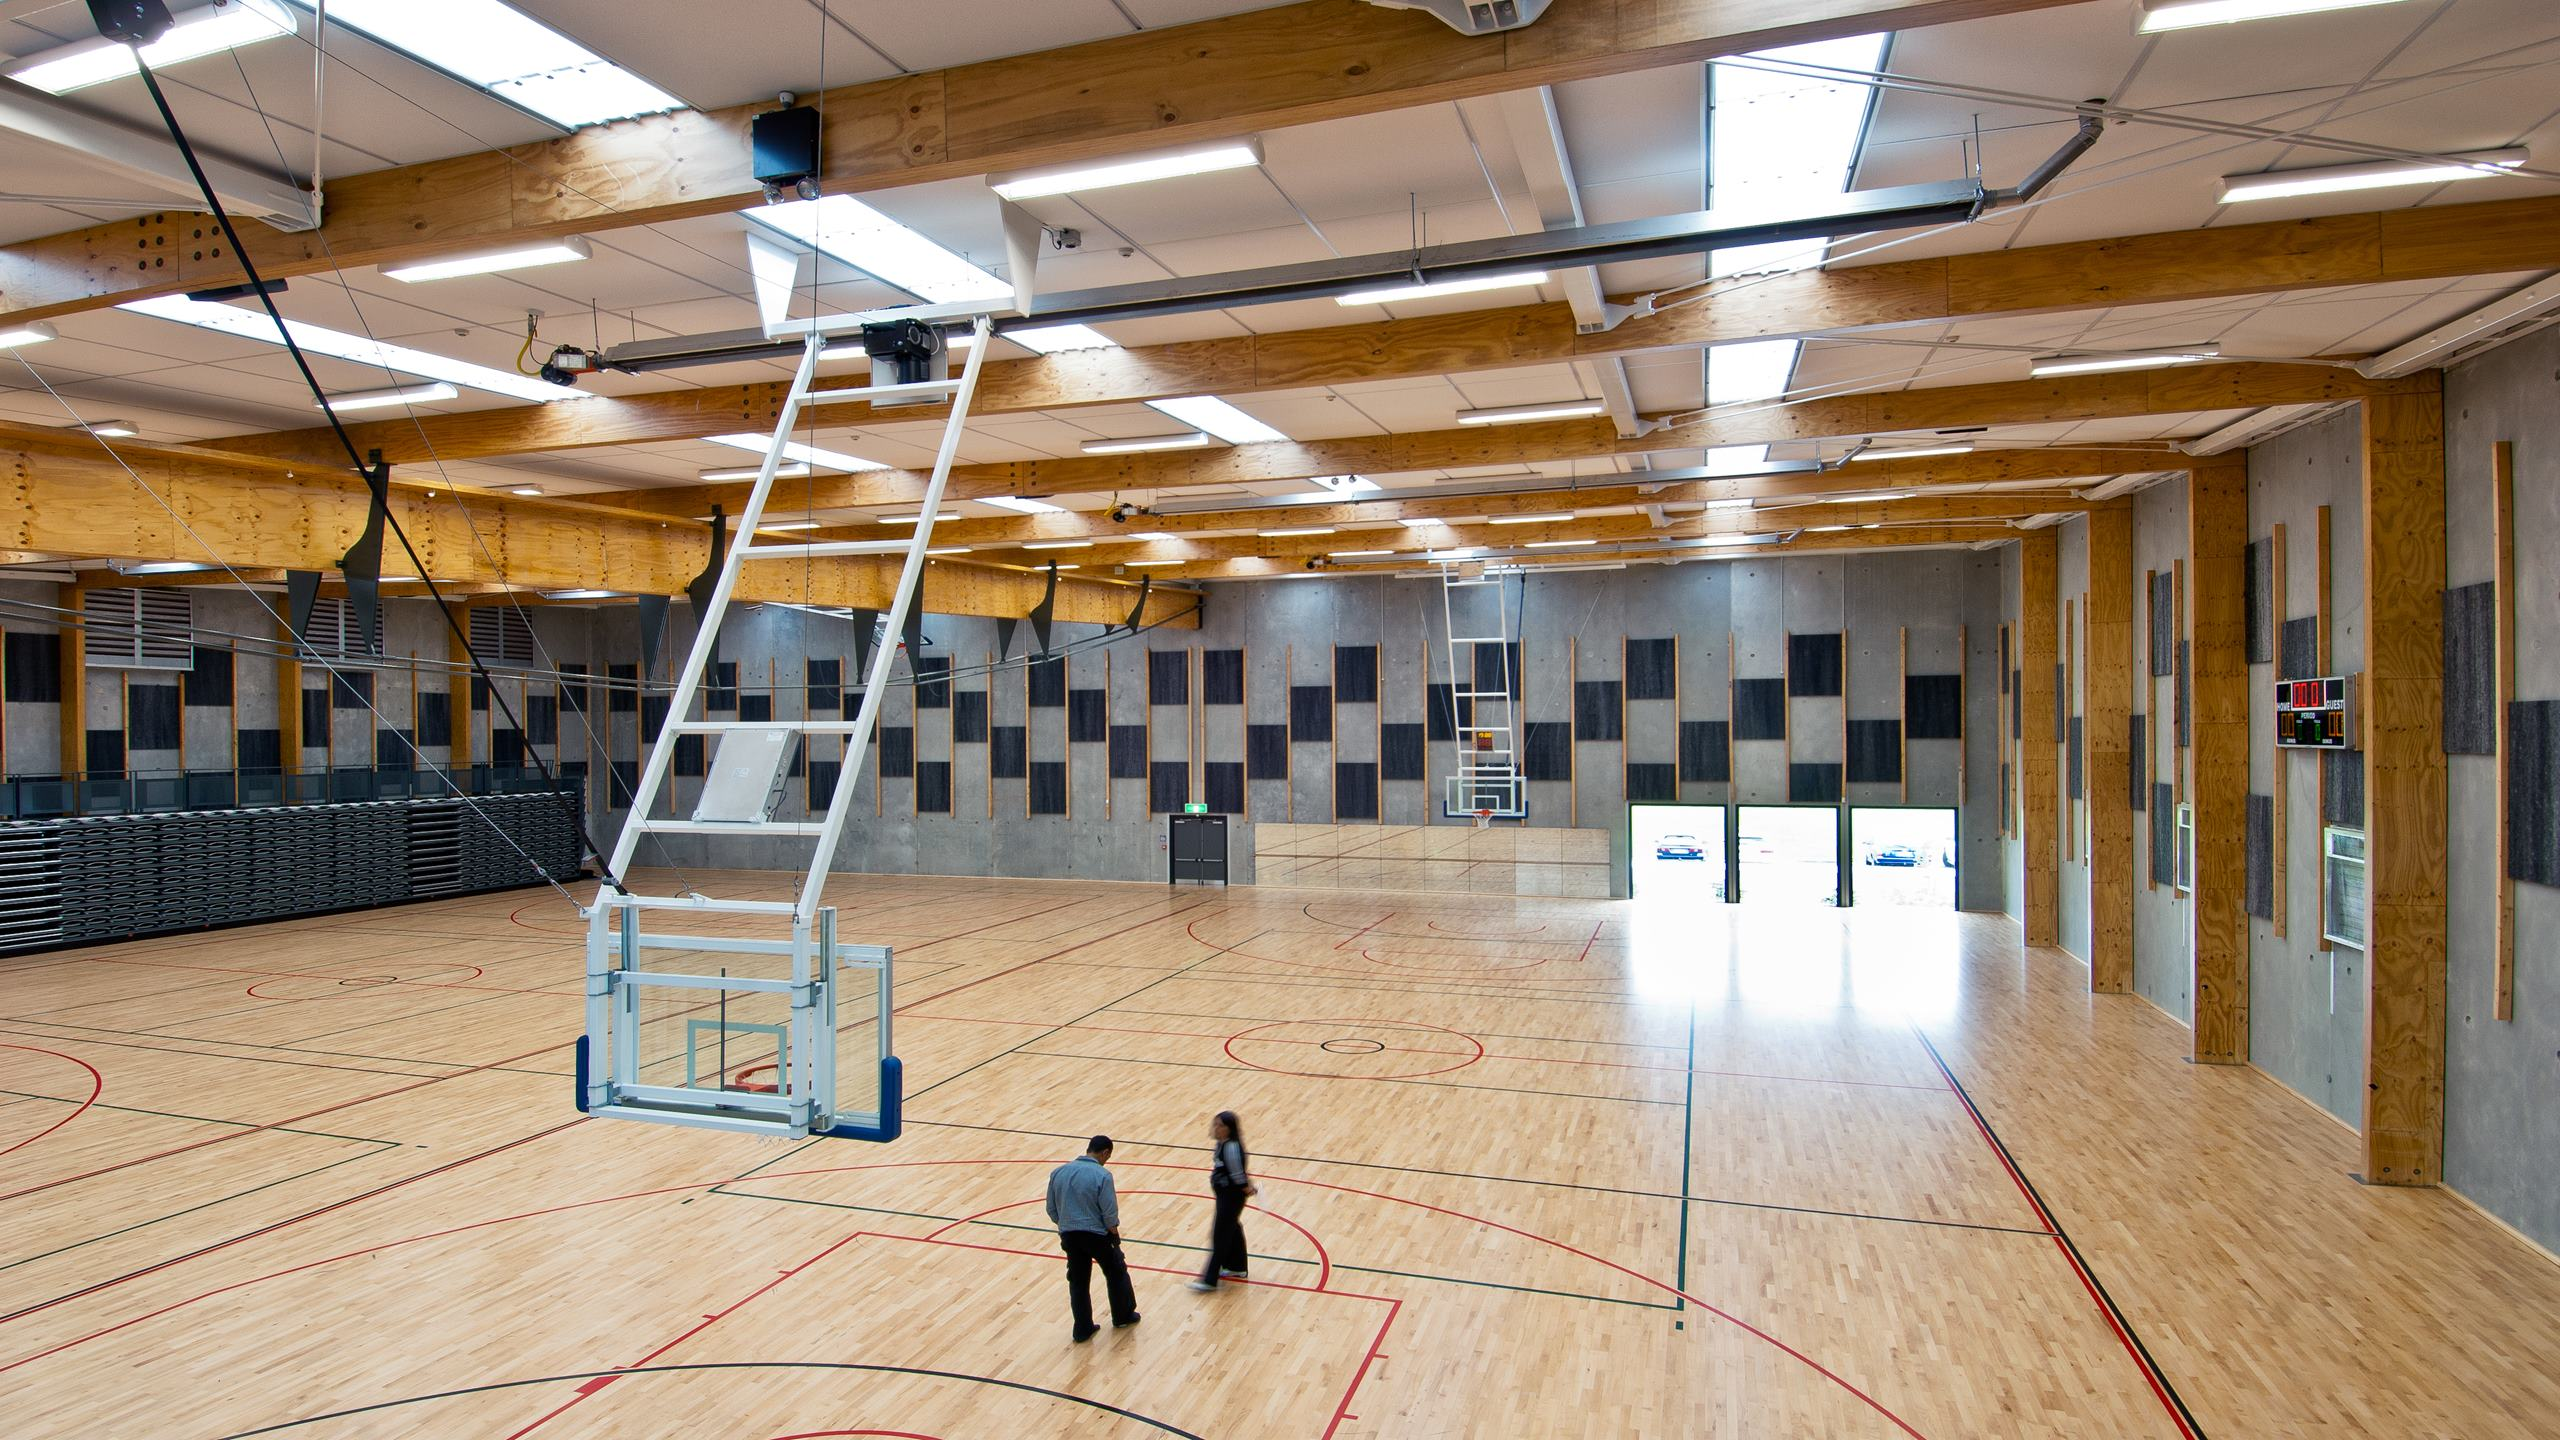 Nga Pura Pura Sports Complex showing over sized Triton Sports panels installed to the ceilings of the gymnasium